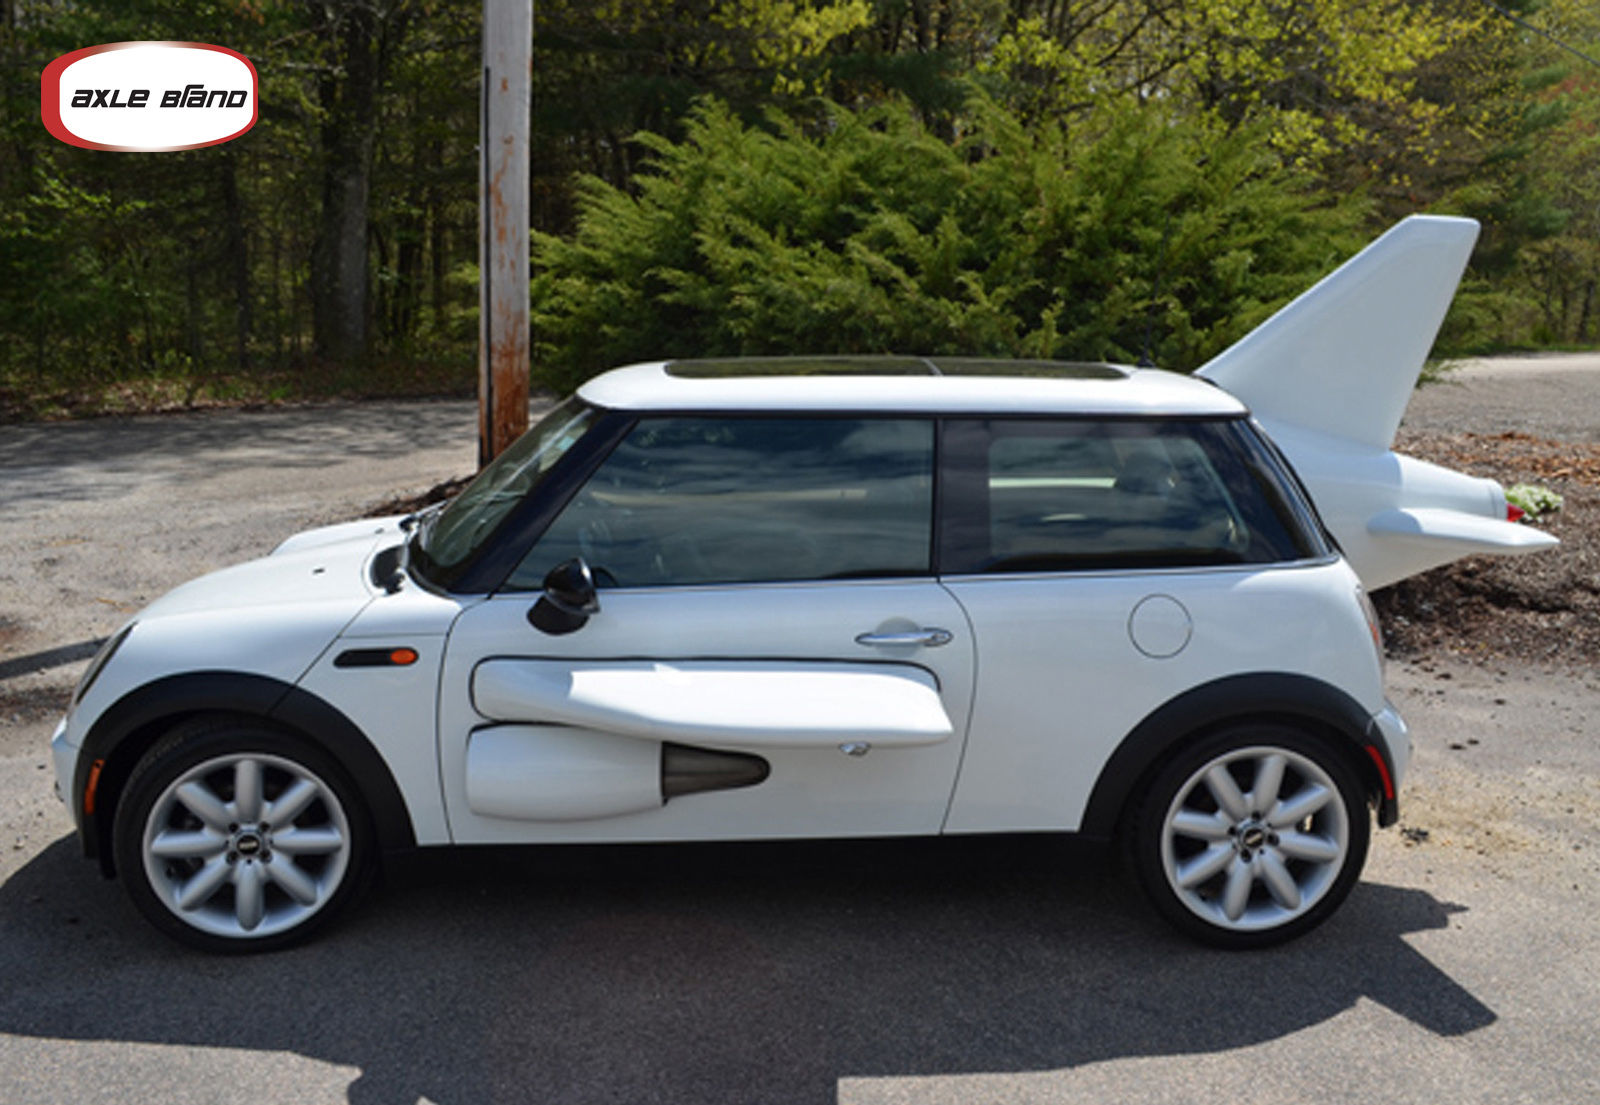 6 Photos Airplane Shaped Mini Cooper